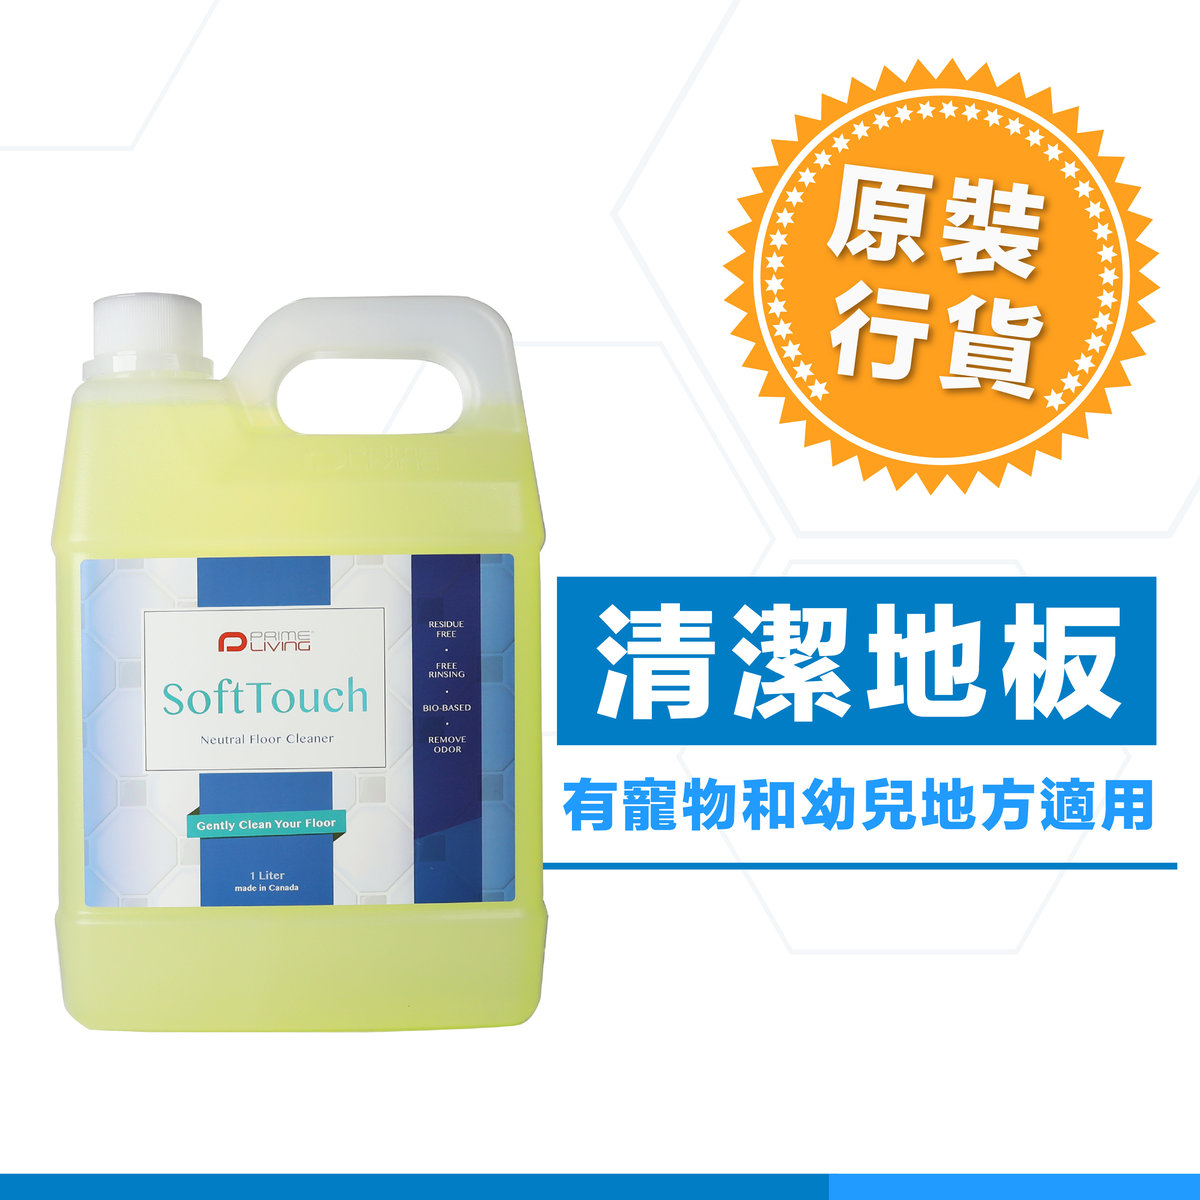 SoftTouch Neutral Floor Cleaner (1L) (floor / cleaning / remove dirt / stain/ pet / baby)